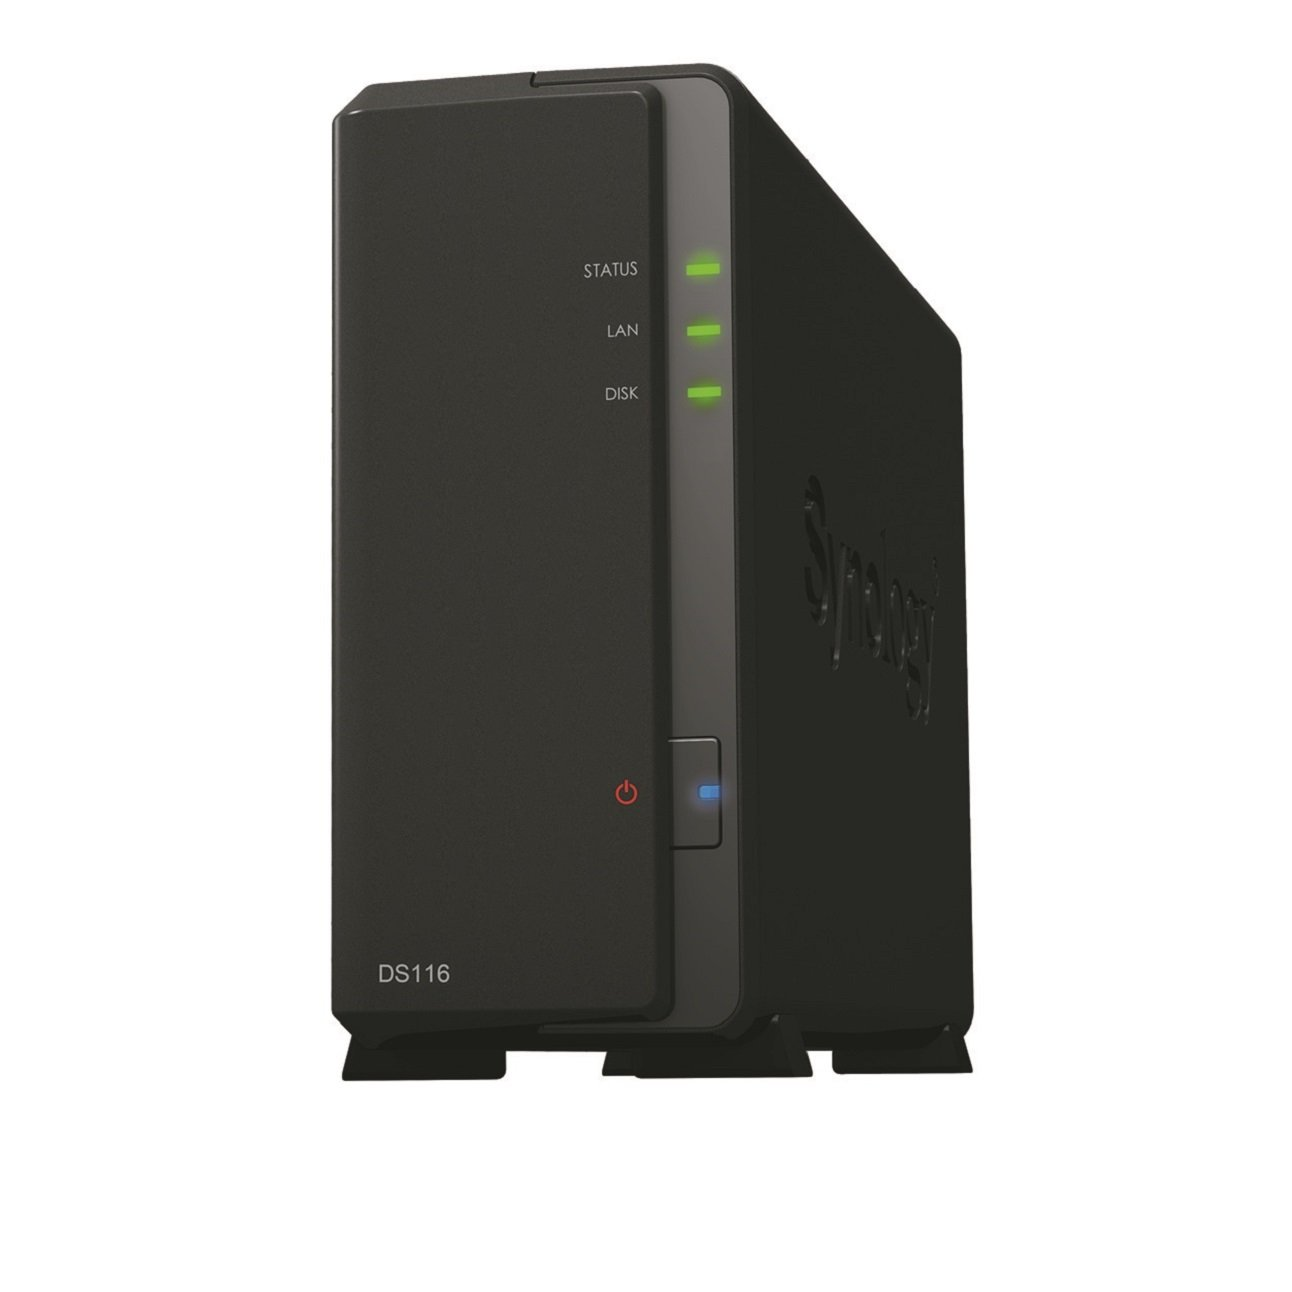 TALLA 1 GB. Synology Serie Value DS116 - Dispositivo de Almacenamiento en Red (GB, 2 Puertos USB 3.0, 1 Puerto LAN Gigabit), Negro